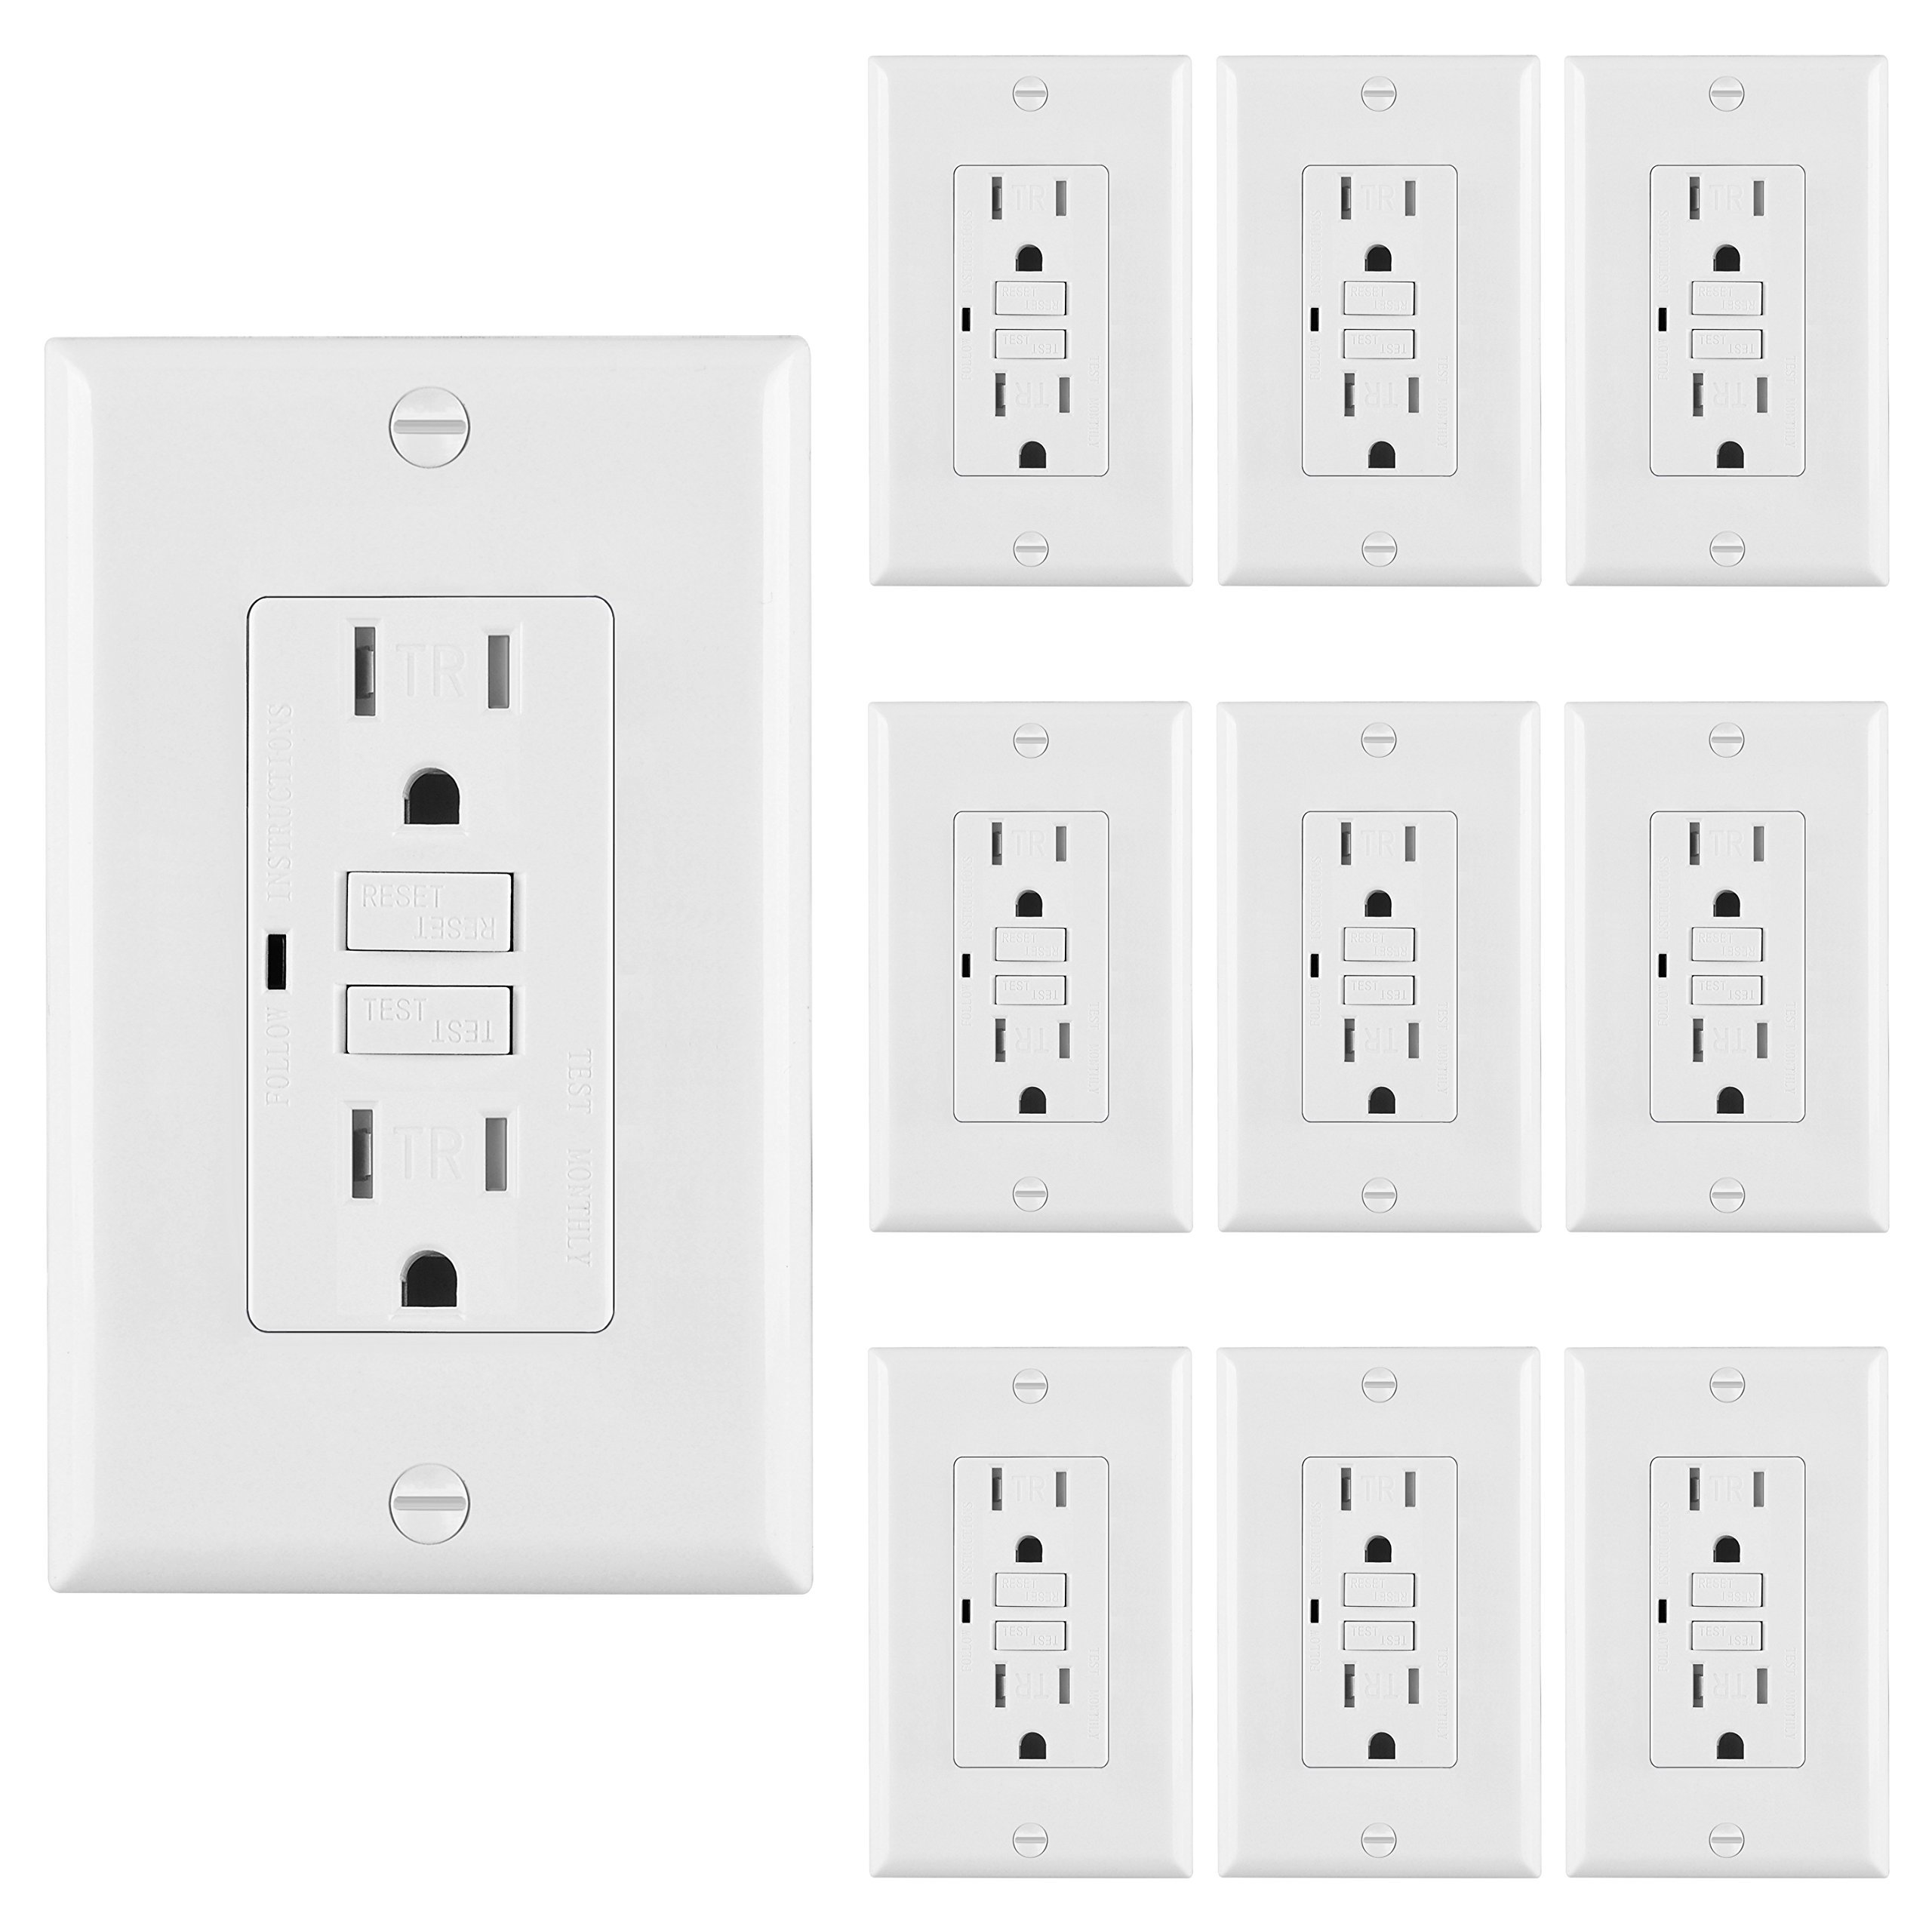 Best Rated In Ground Fault Circuit Interrupter Outlets Helpful Wiring Diagram Of A Half Switched Receptacle Feeding Switch 10 Pack Bestten Self Test Tamper Resistant Gfci Outlet With Led Indicator